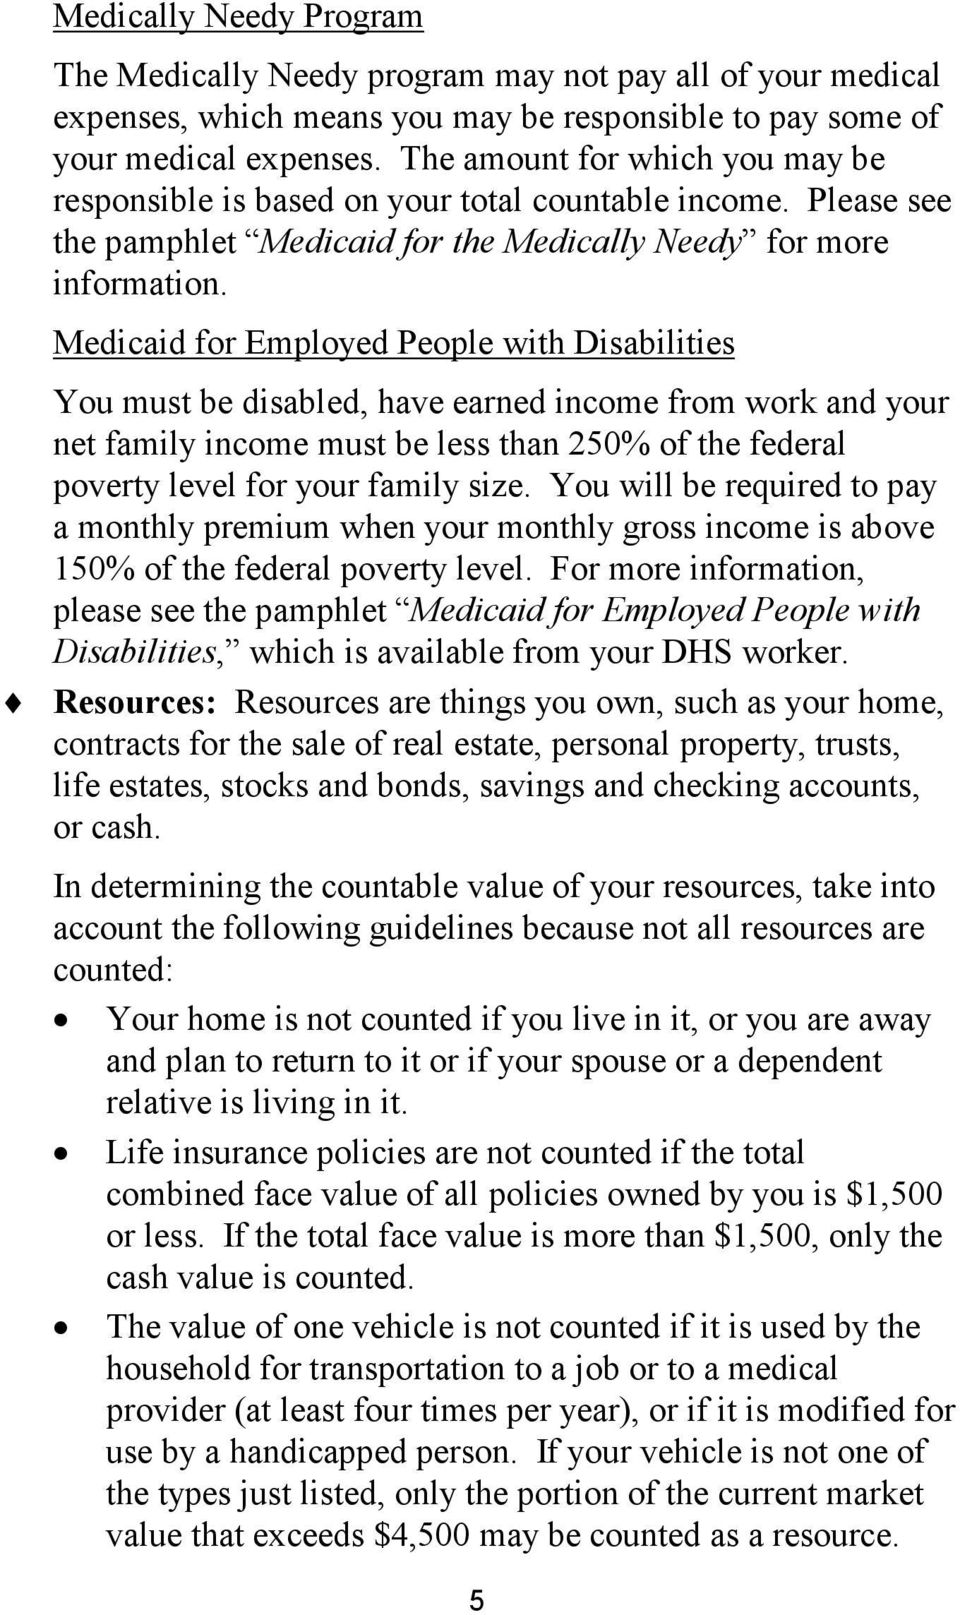 Medicaid for Employed People with Disabilities You must be disabled, have earned income from work and your net family income must be less than 250% of the federal poverty level for your family size.